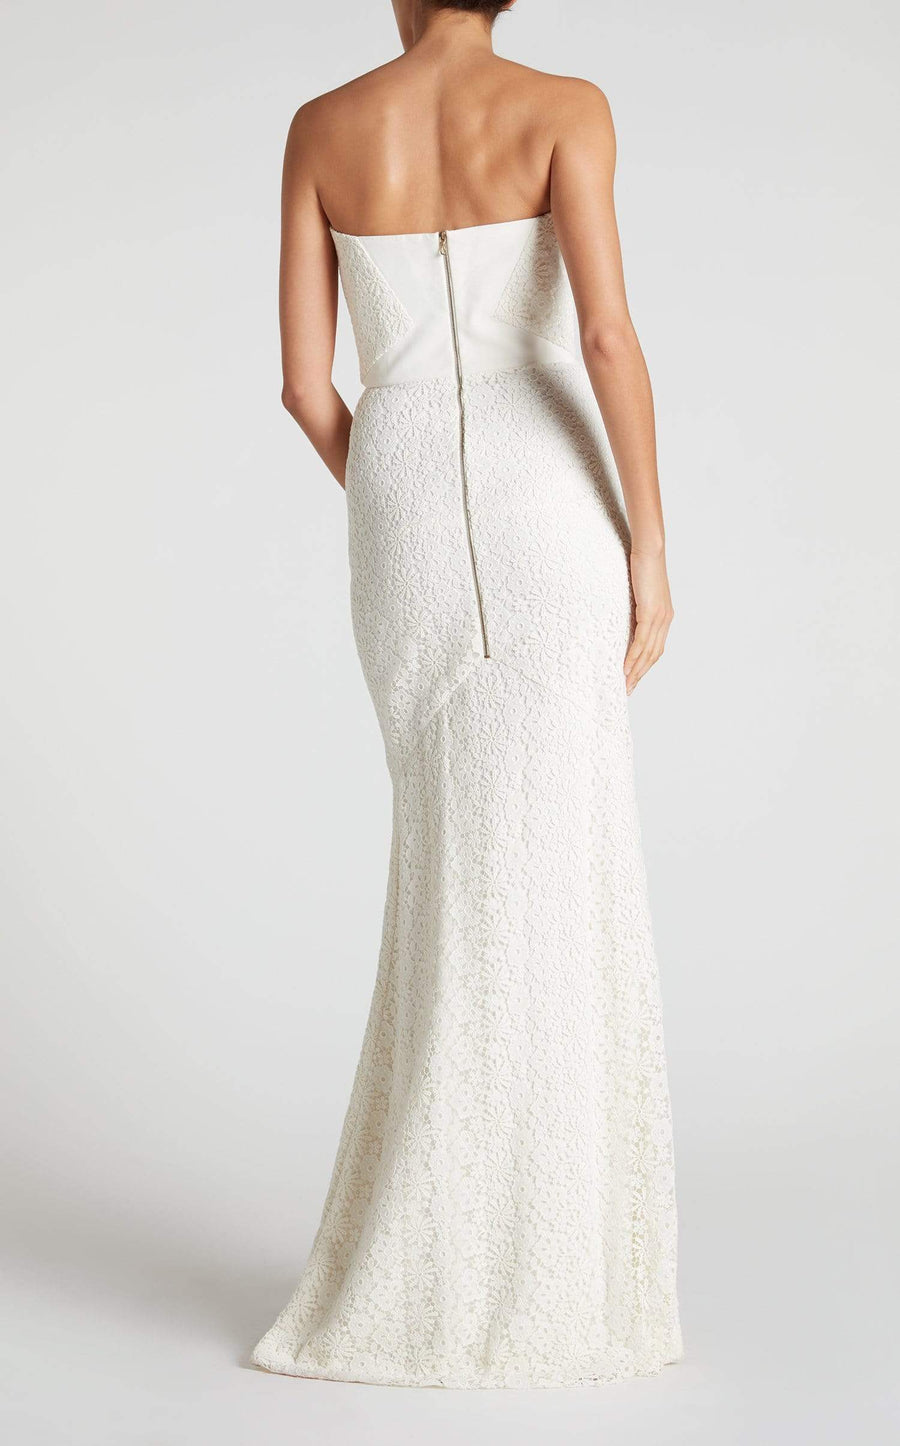 Bella Gown In White from Roland Mouret